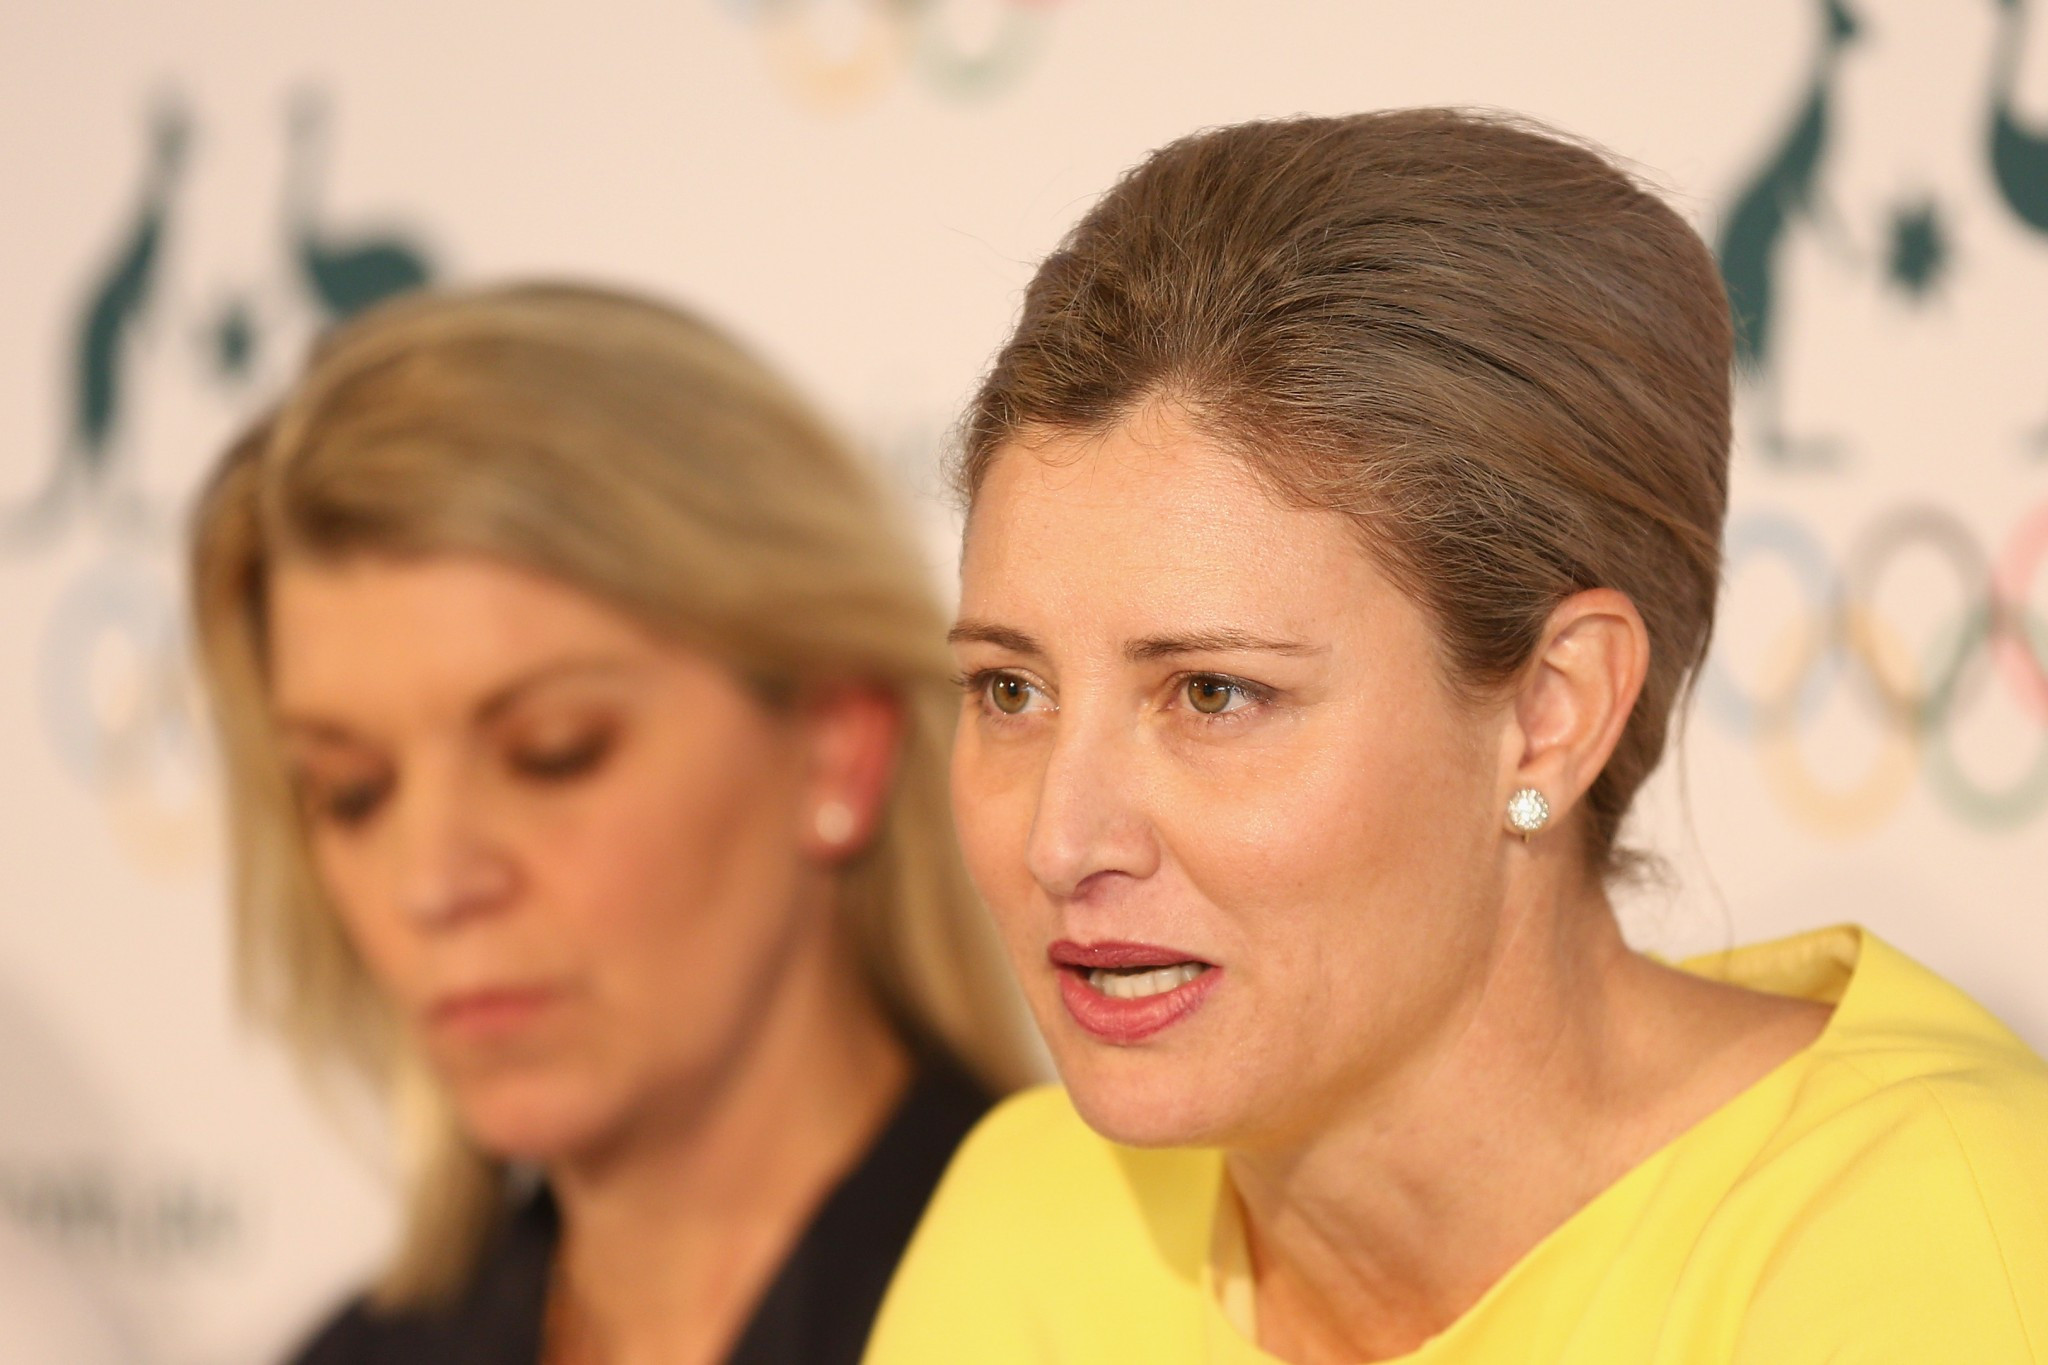 Australian Olympic Committee media director Mike Tancred had been given a severe reprimand after threatening to